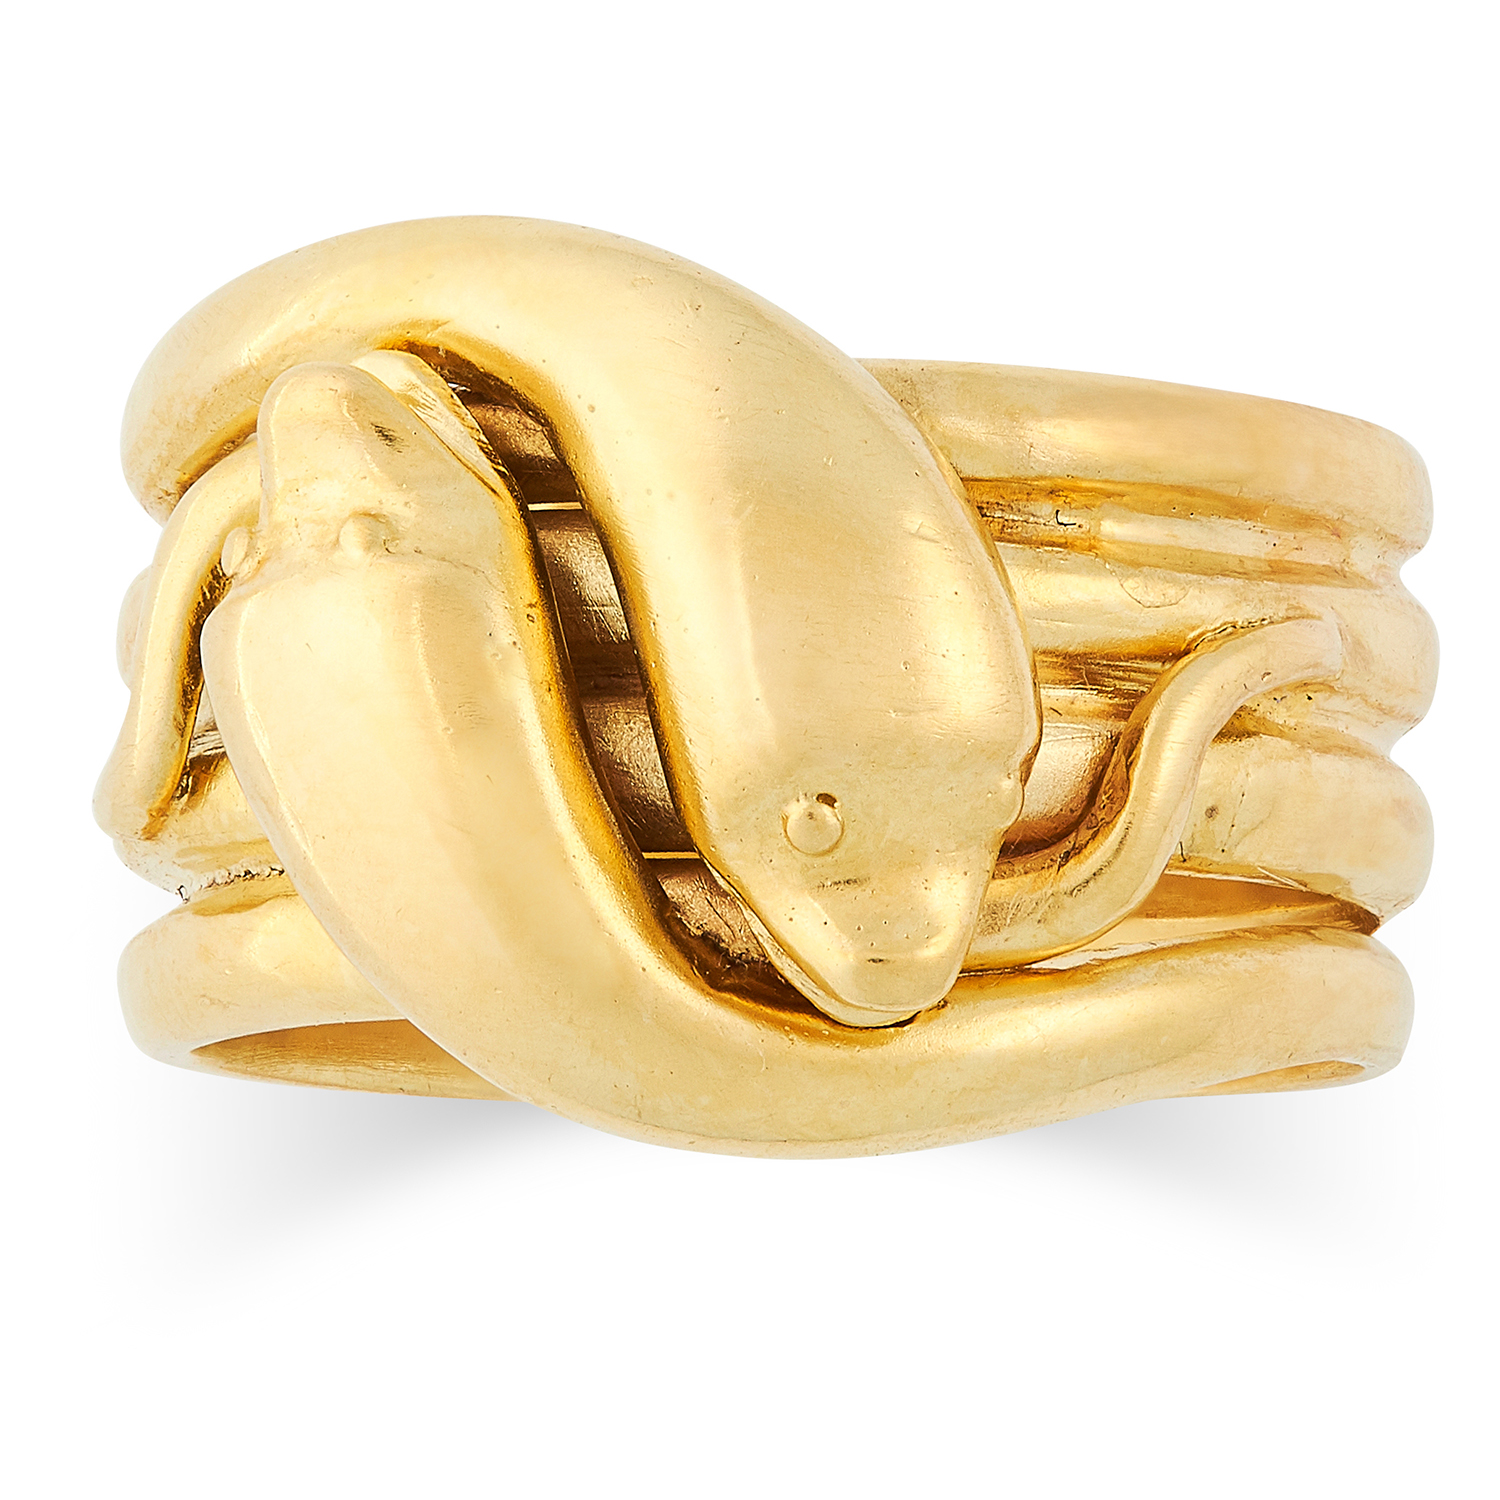 Los 85 - ANTIQUE SNAKE RING comprising of two intertwined snakes, size R / 8.5, 16.6g.